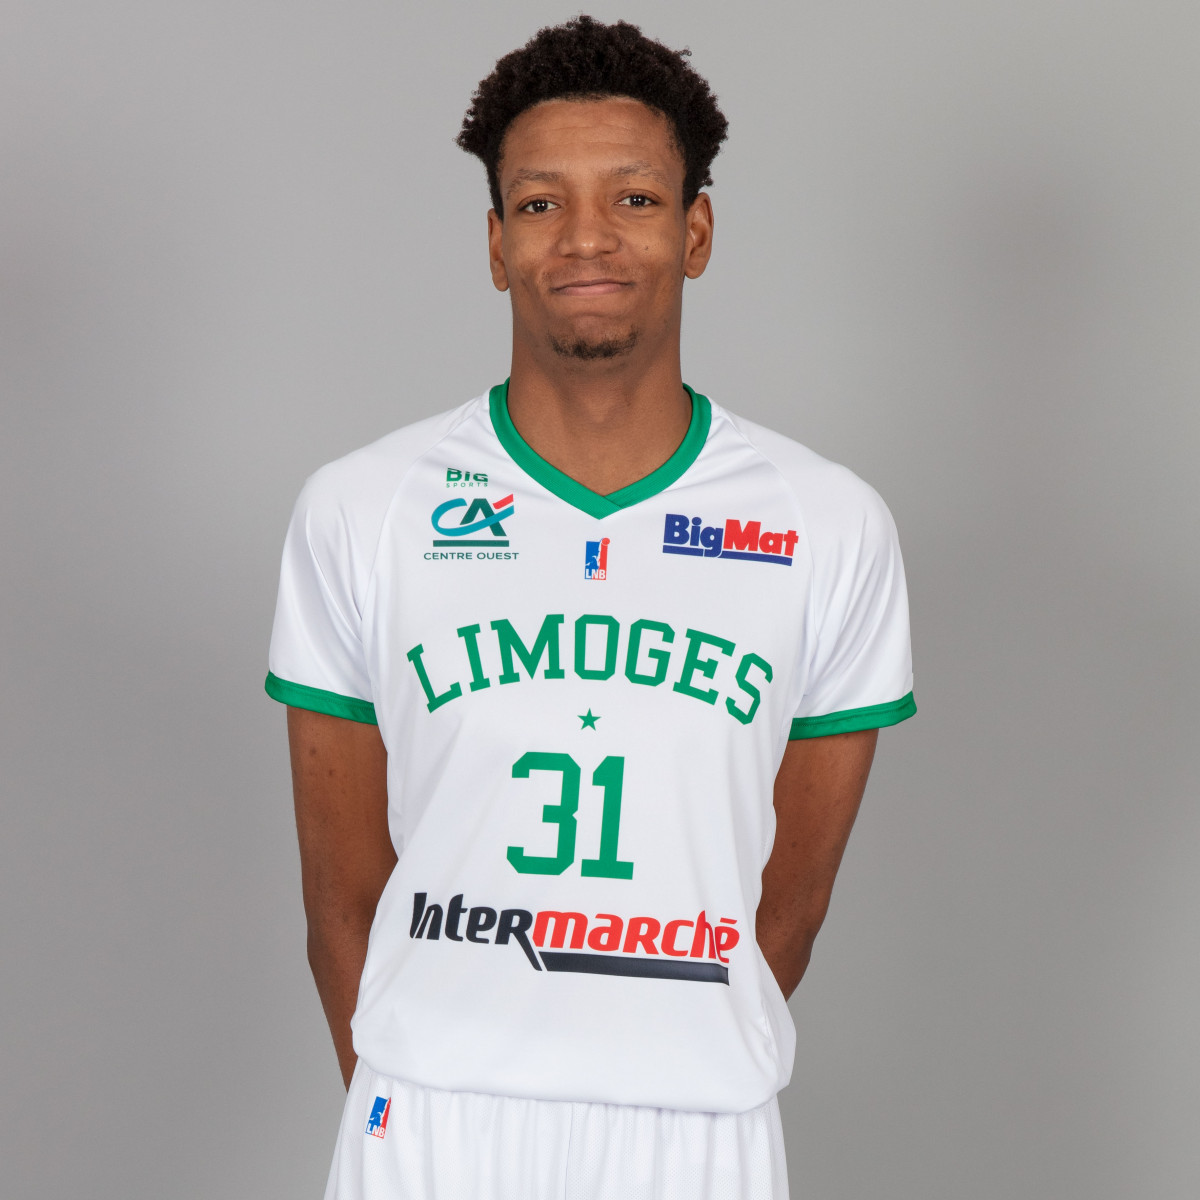 Photo of Maxime Carene, 2019-2020 season